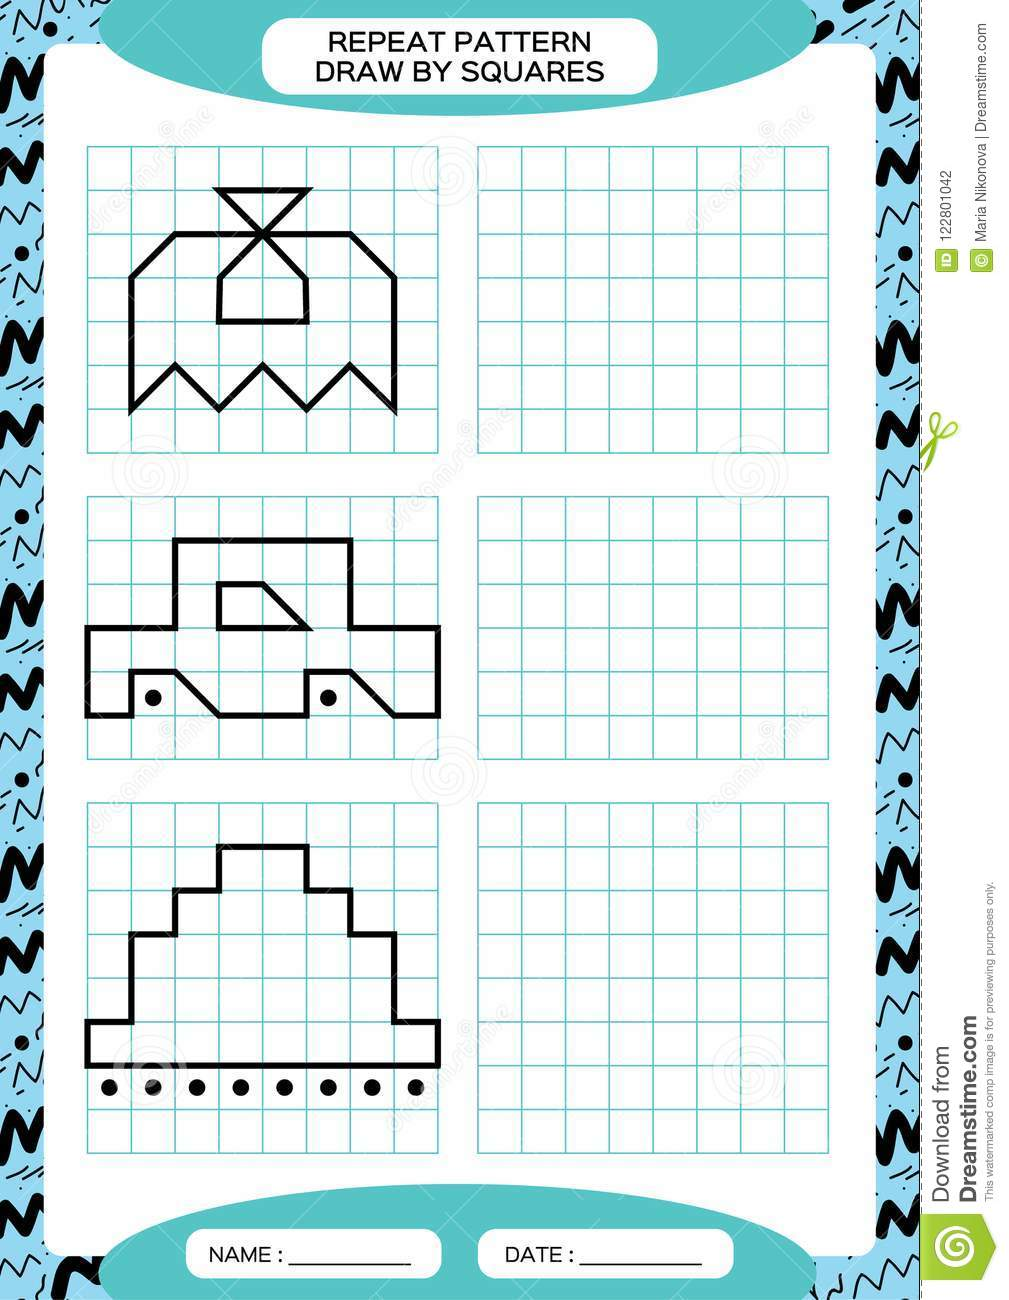 repeat pattern tracing lines activity special for preschool kids worksheet for practicing. Black Bedroom Furniture Sets. Home Design Ideas